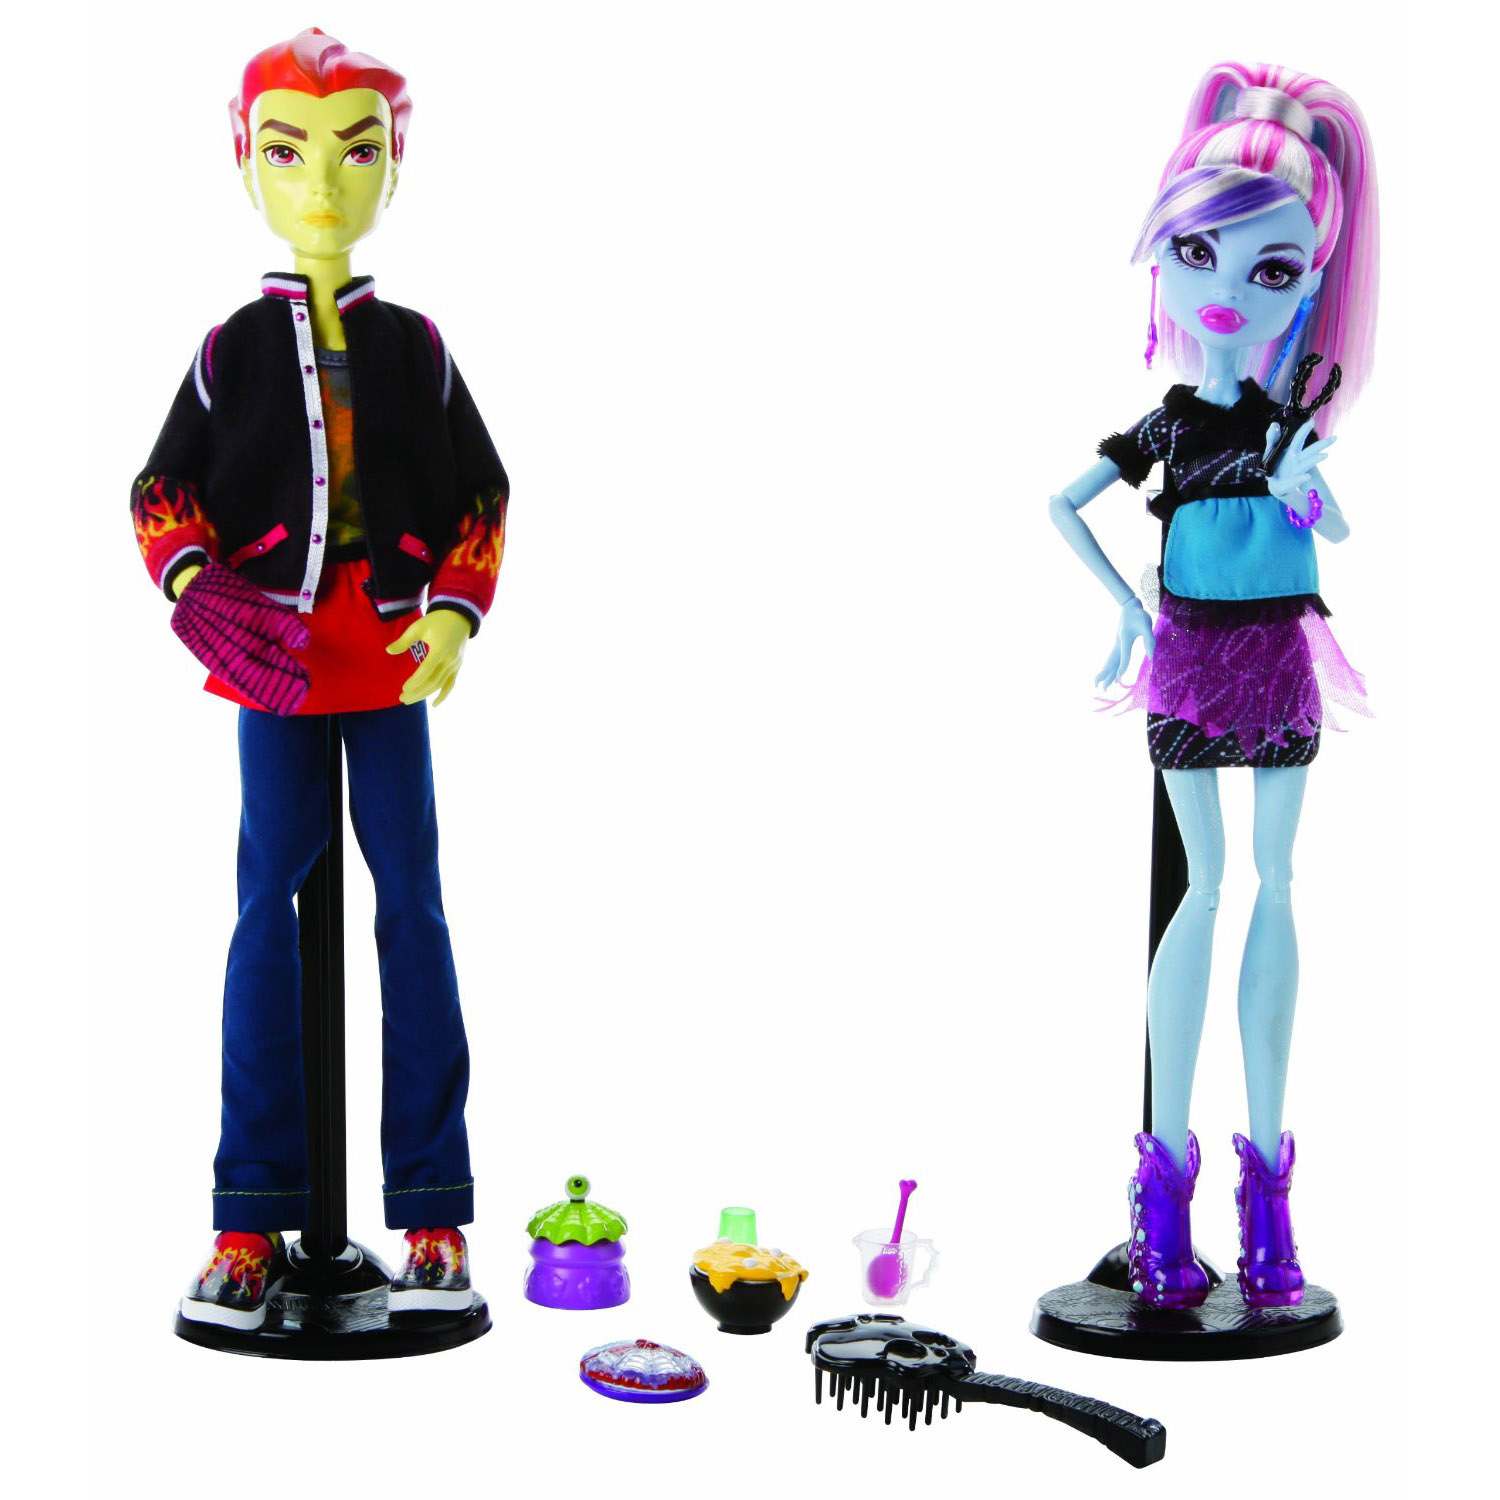 Monster High Toys : Monster high toys classroom pack abbey bominable and